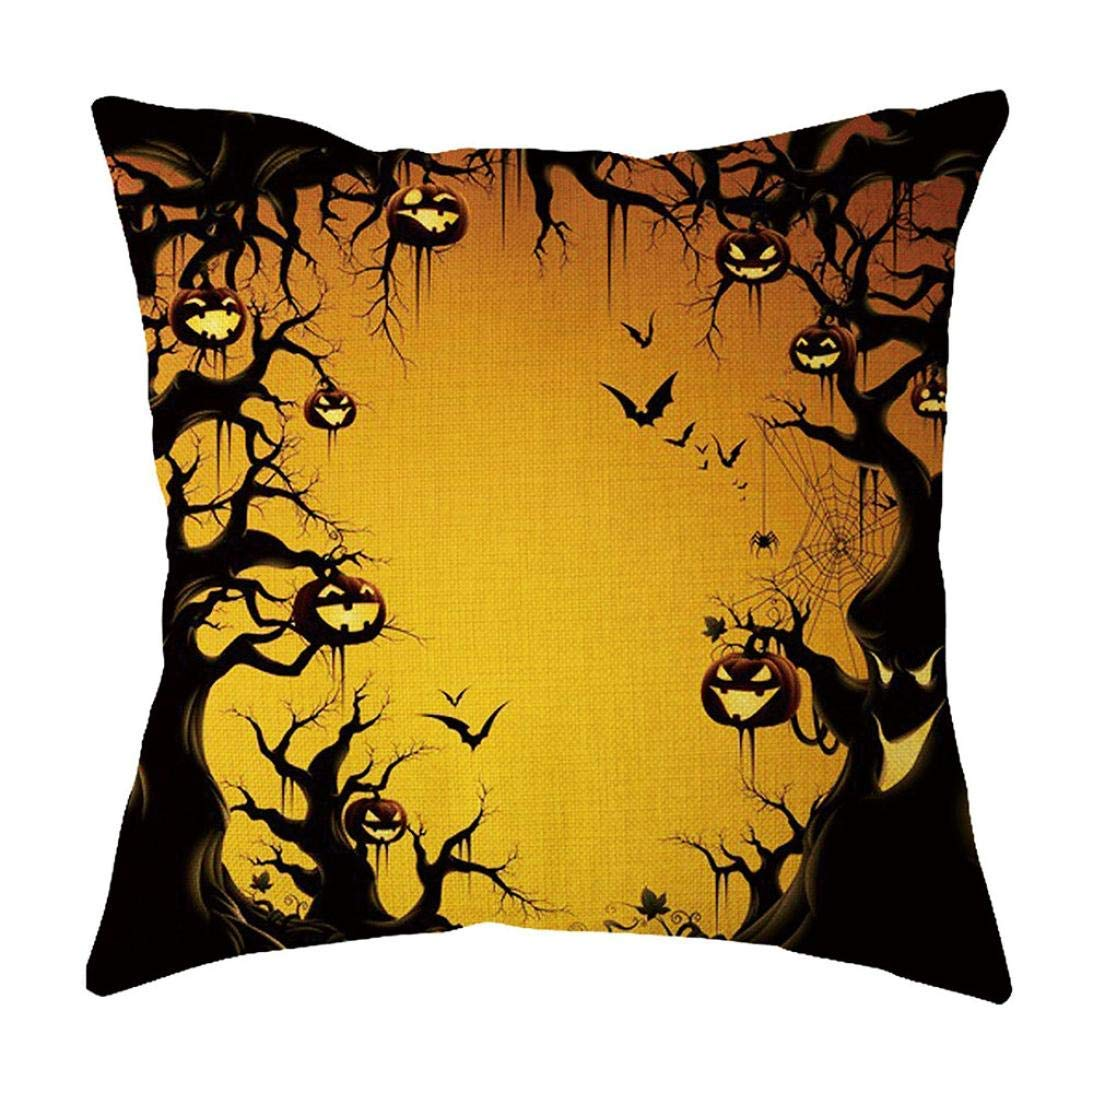 MaxFox Halloween Geometric Design Throw Pillow Cover Flax Pillow Cover for Office Sofa Bedroom Car Decor